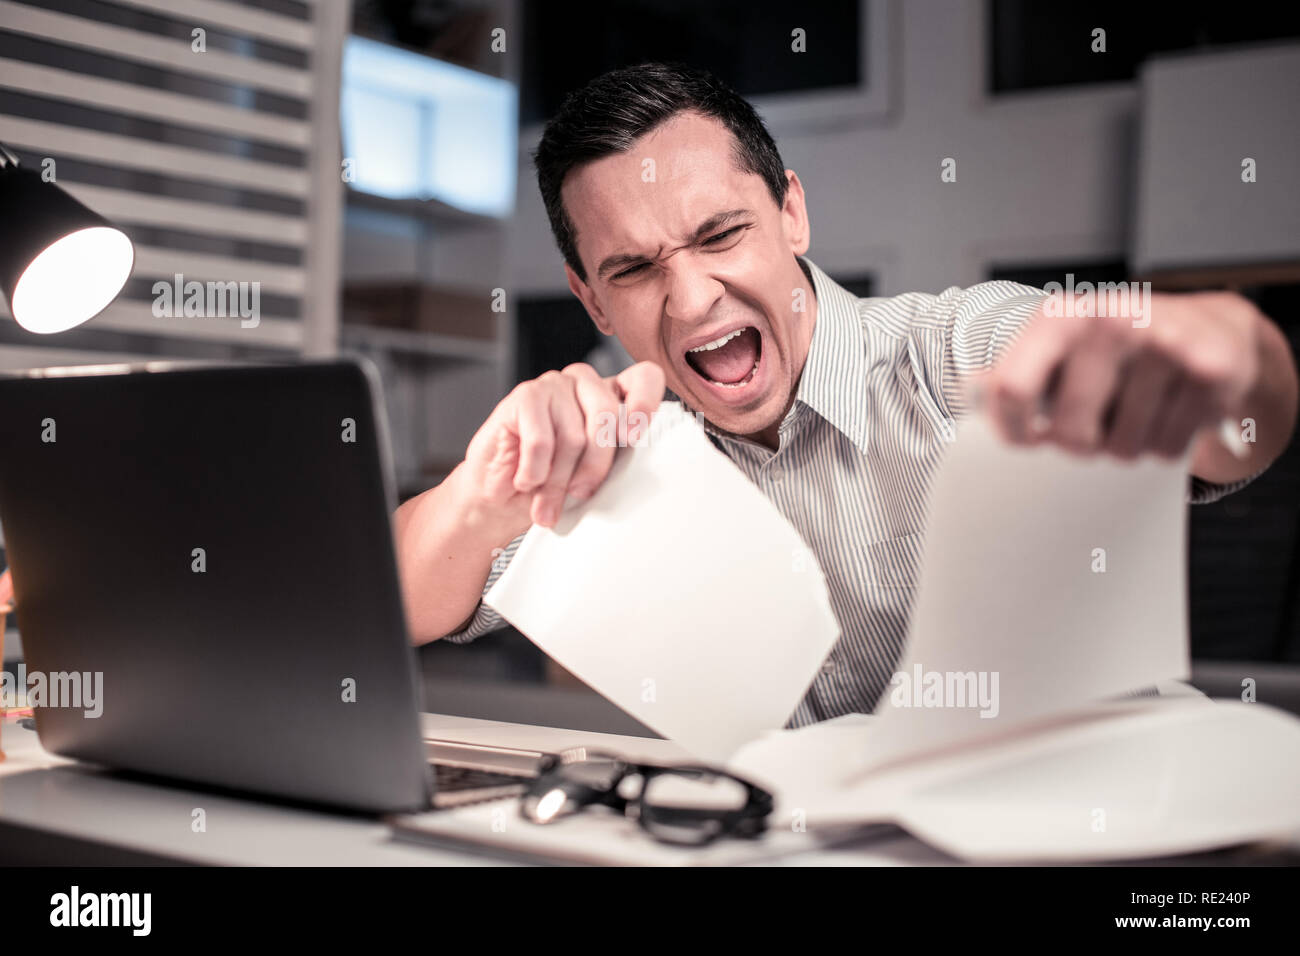 Angry cheerless adult man expressing his emotions - Stock Image